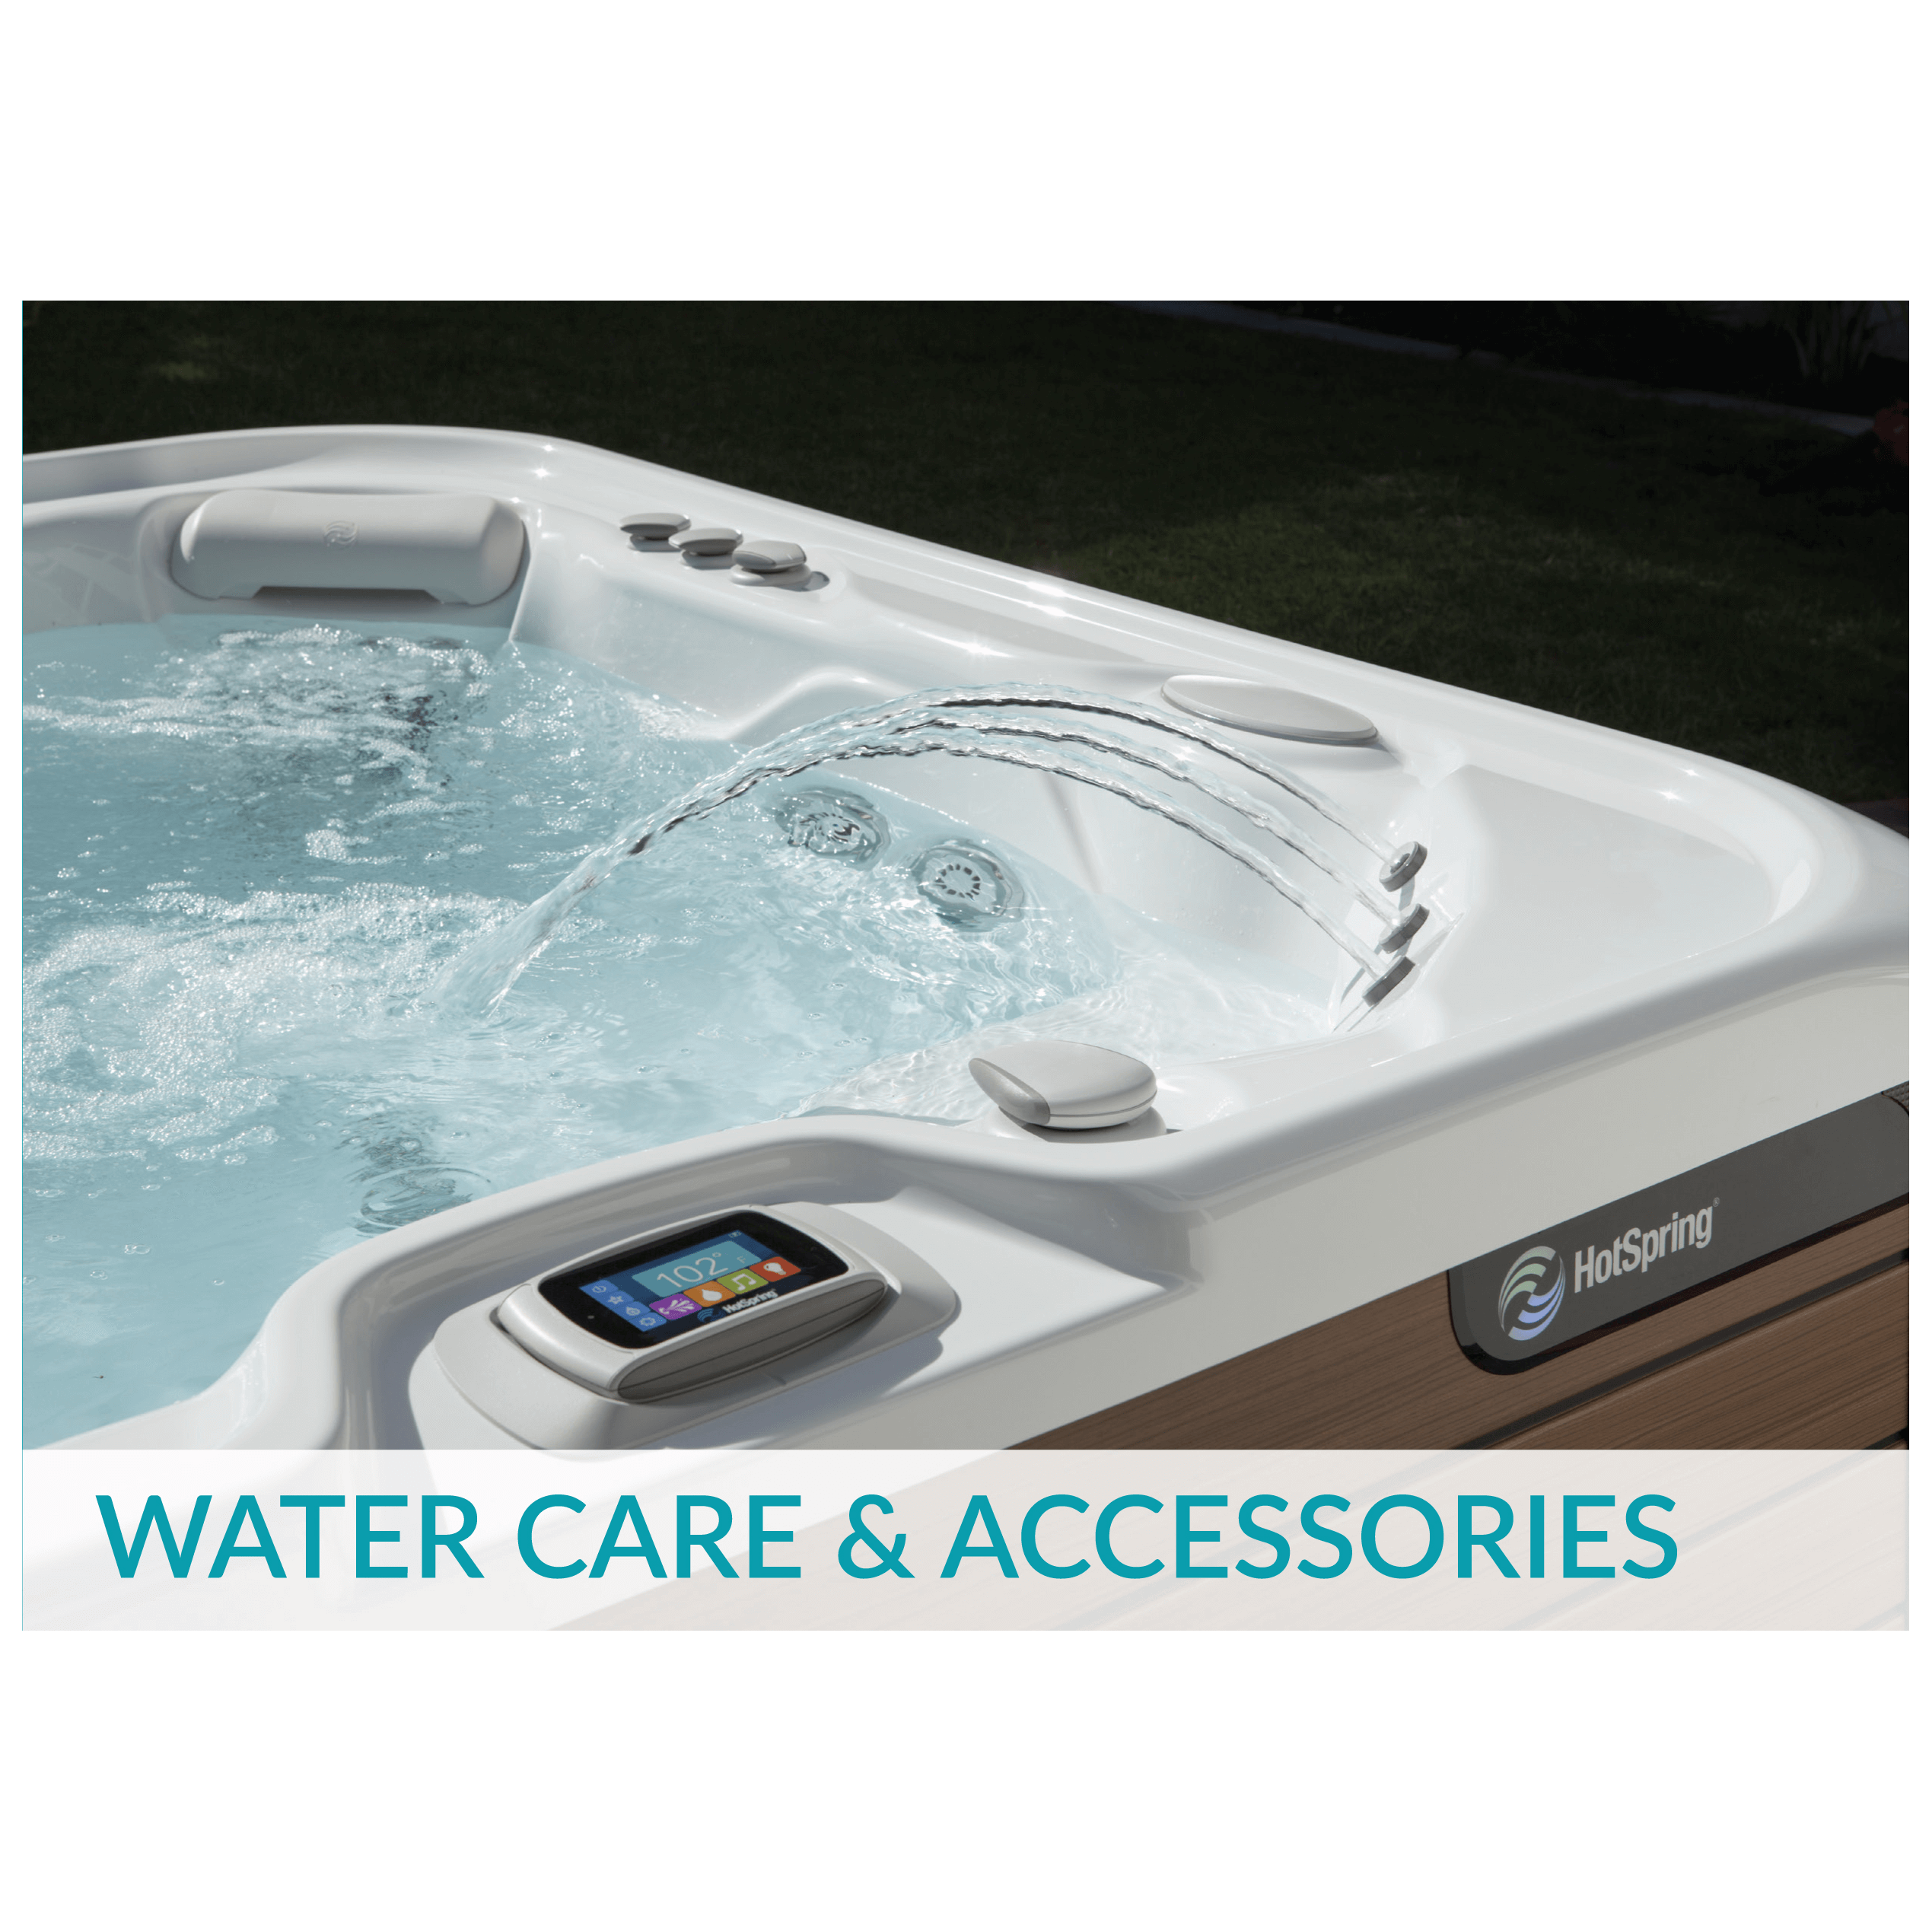 Hot Tub Chemicals Amp Accessories Brochure Hotspring World